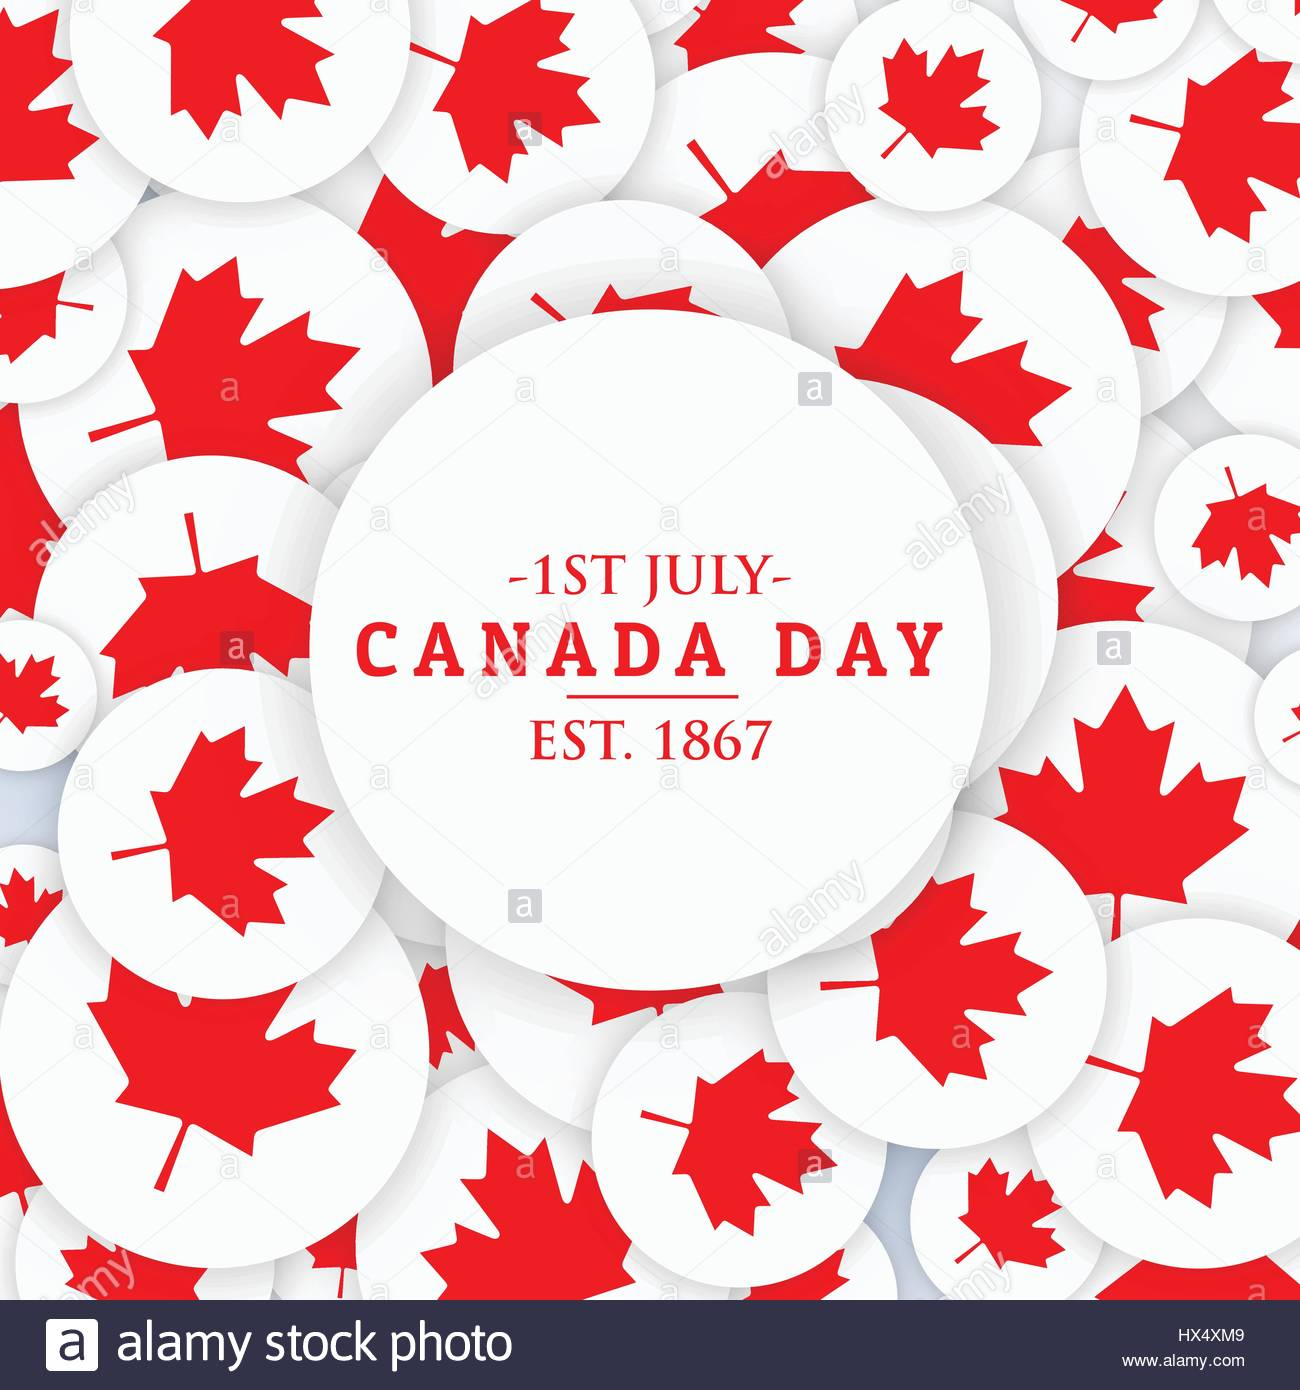 1st july canada day background - Stock Vector